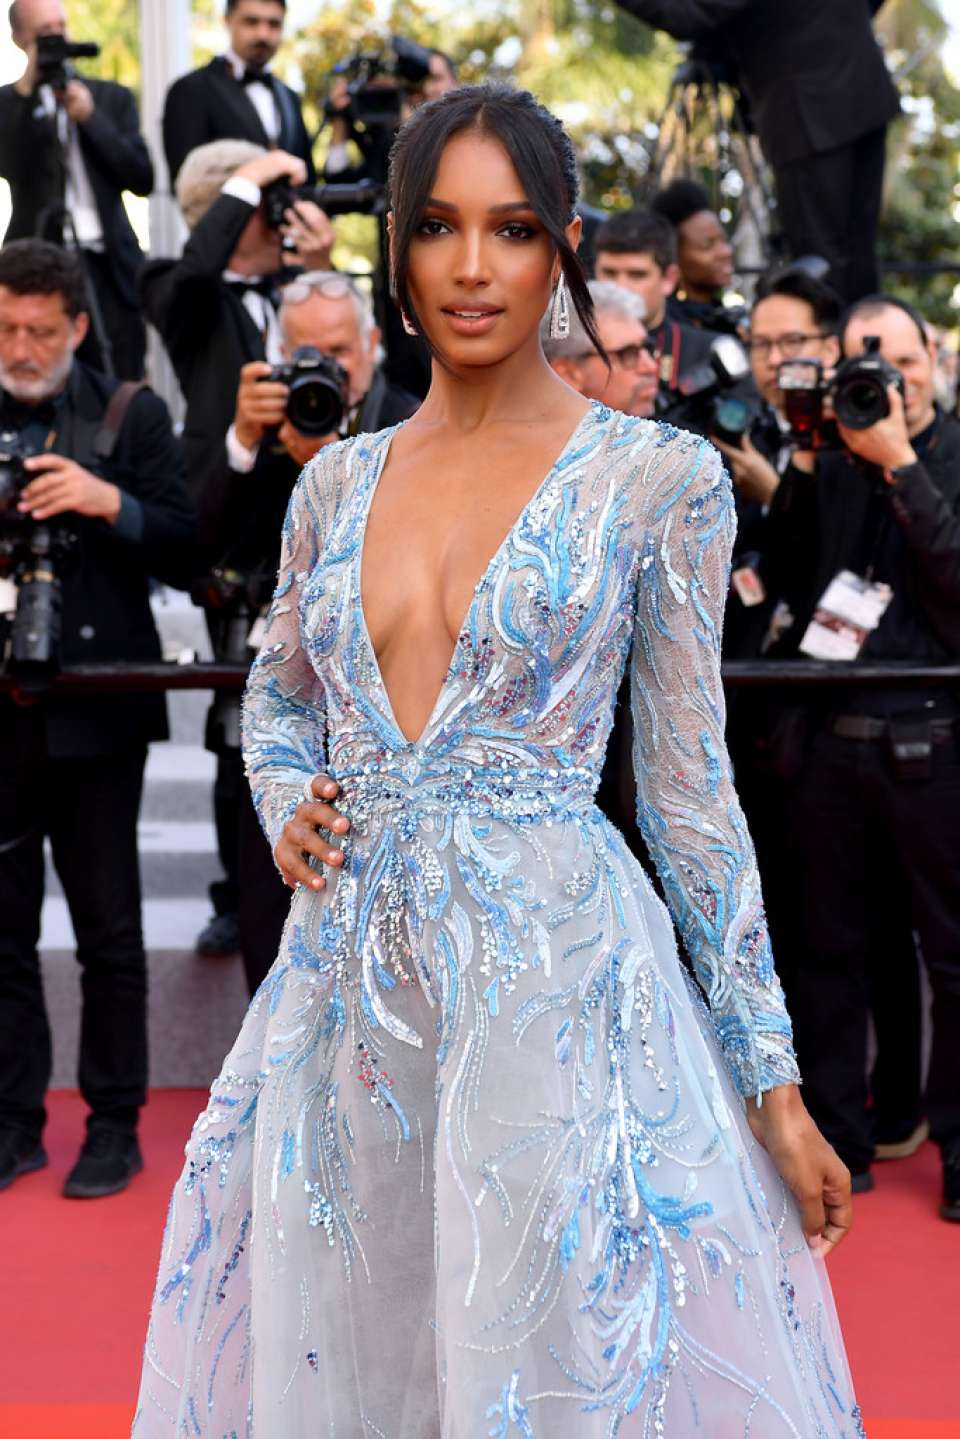 Jasmine Tookes - 'The Traitor' Premiere at 2019 Cannes Film Festival